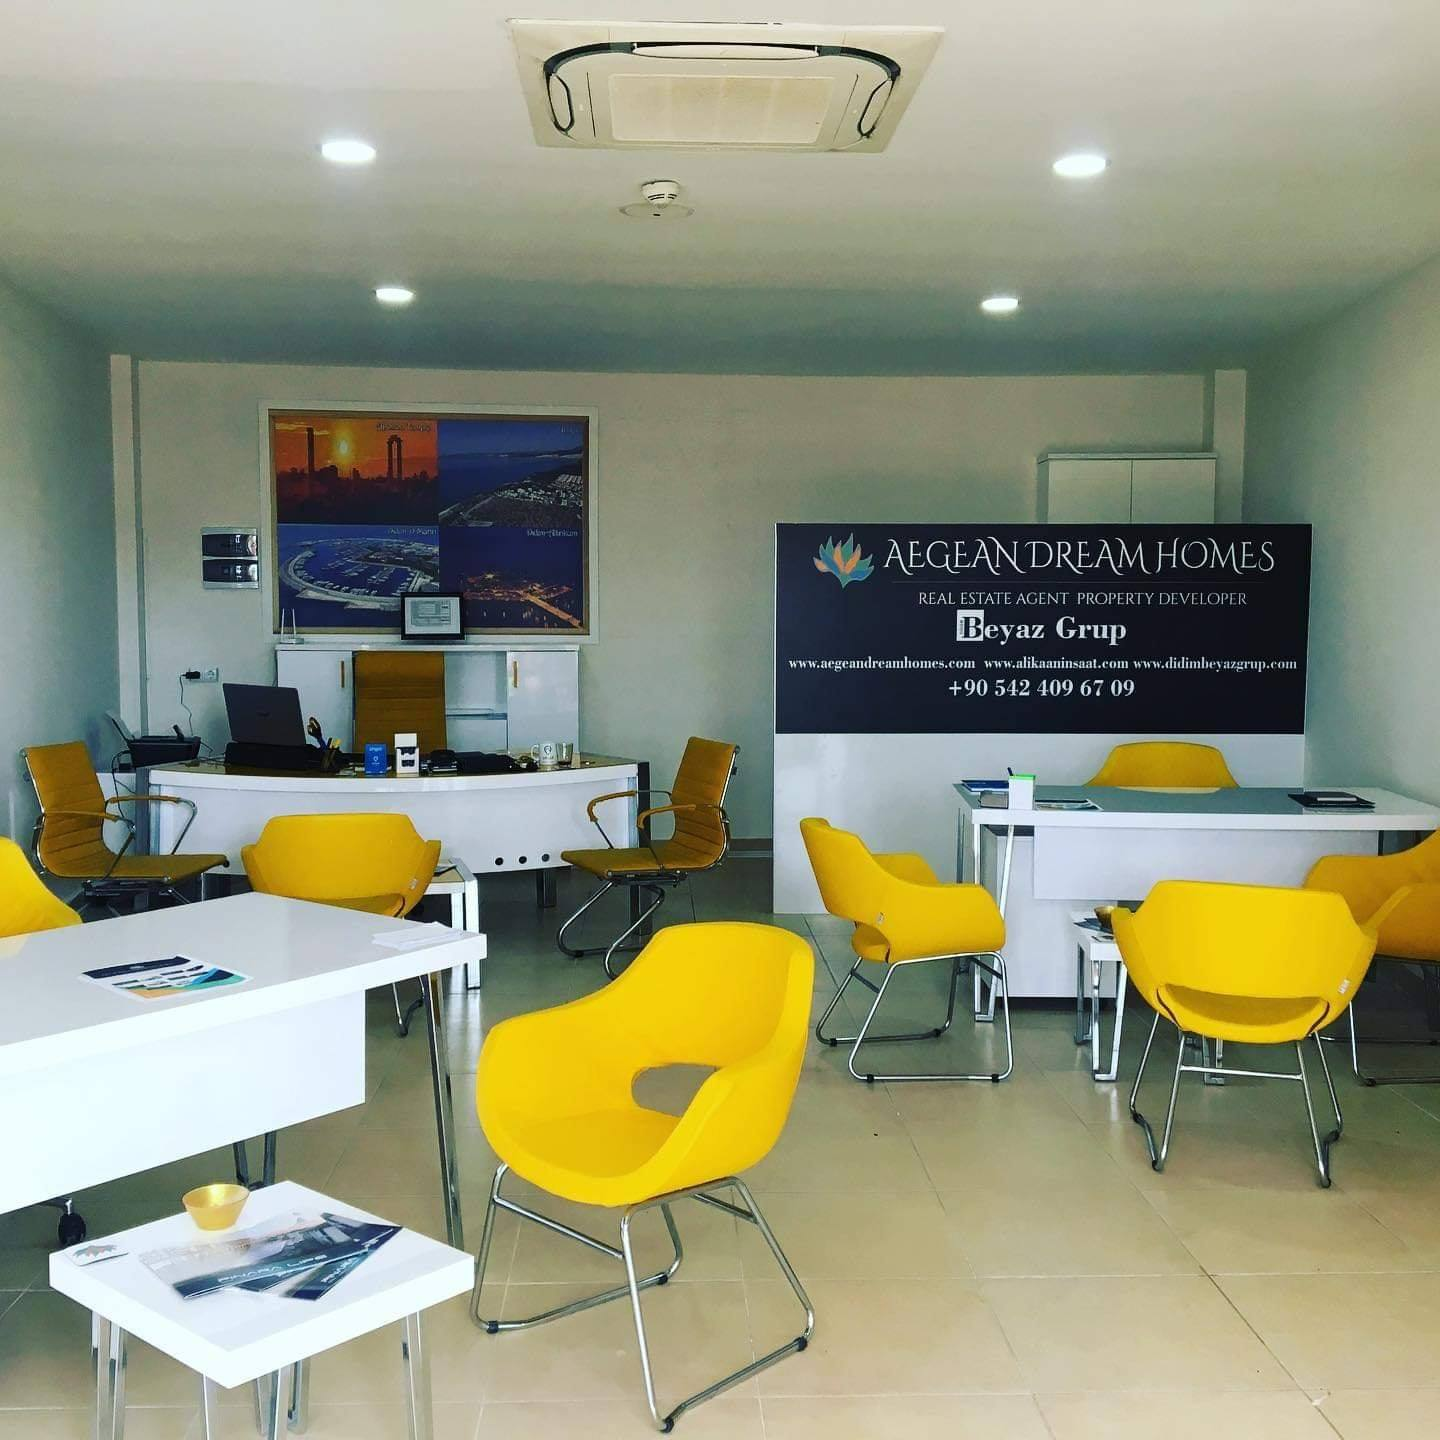 Inside office photo of the Estate Agent and car rental office In Aquasis Hotel Didim